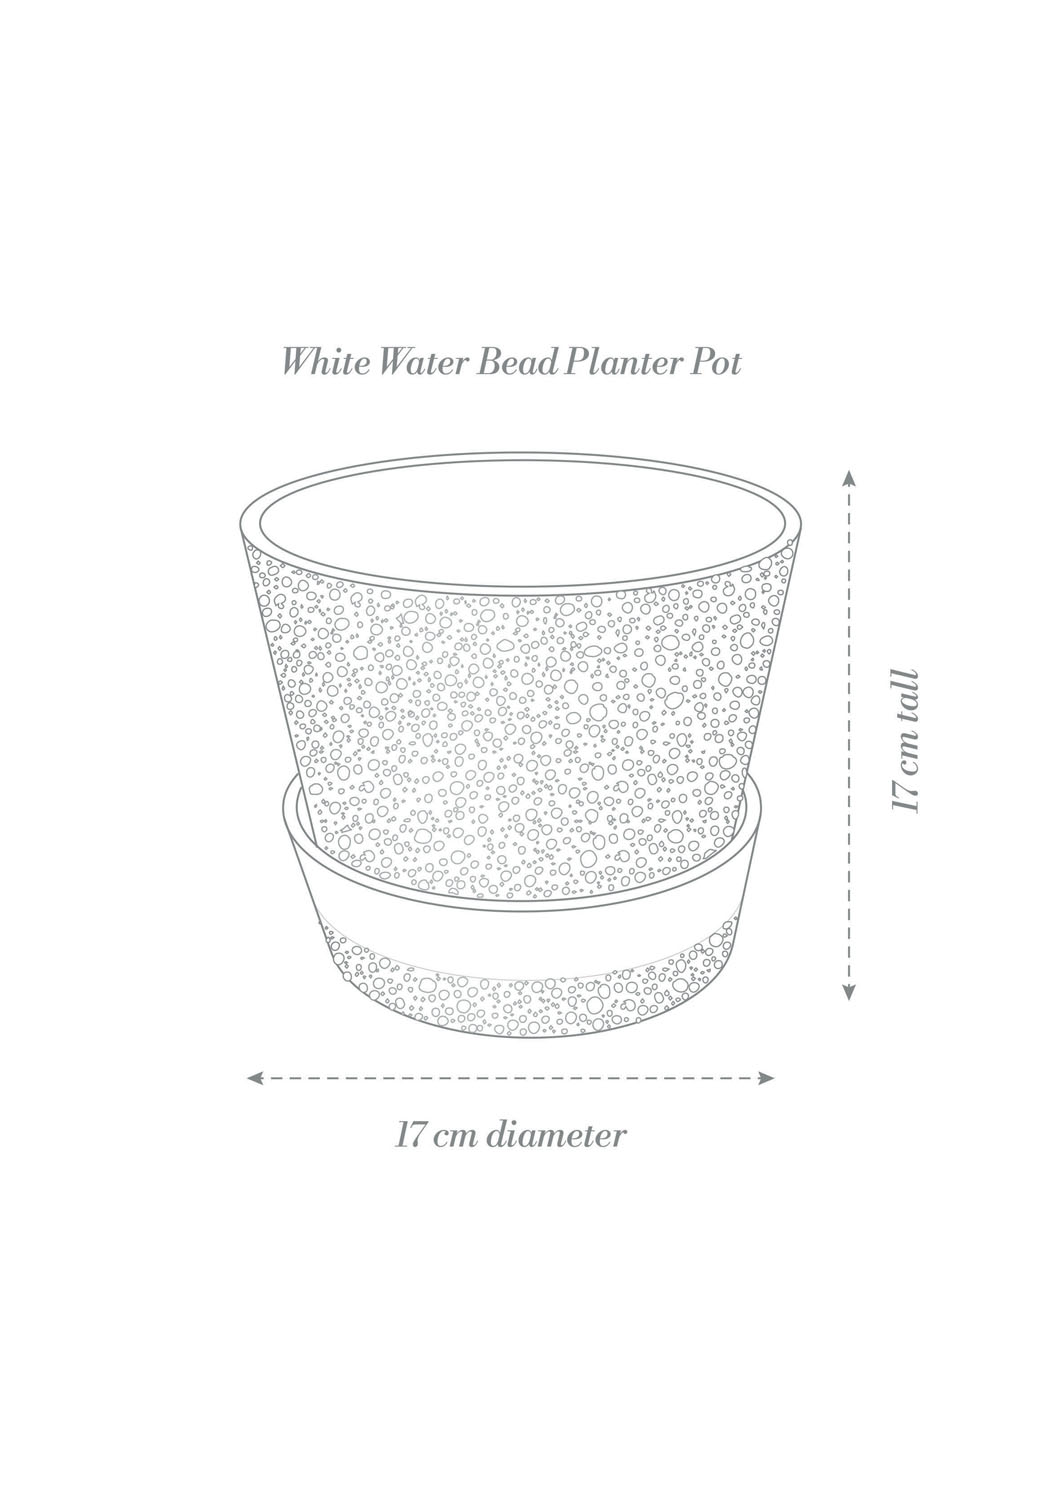 Angus & Celeste White Water Bead Planter Pot Product Diagram